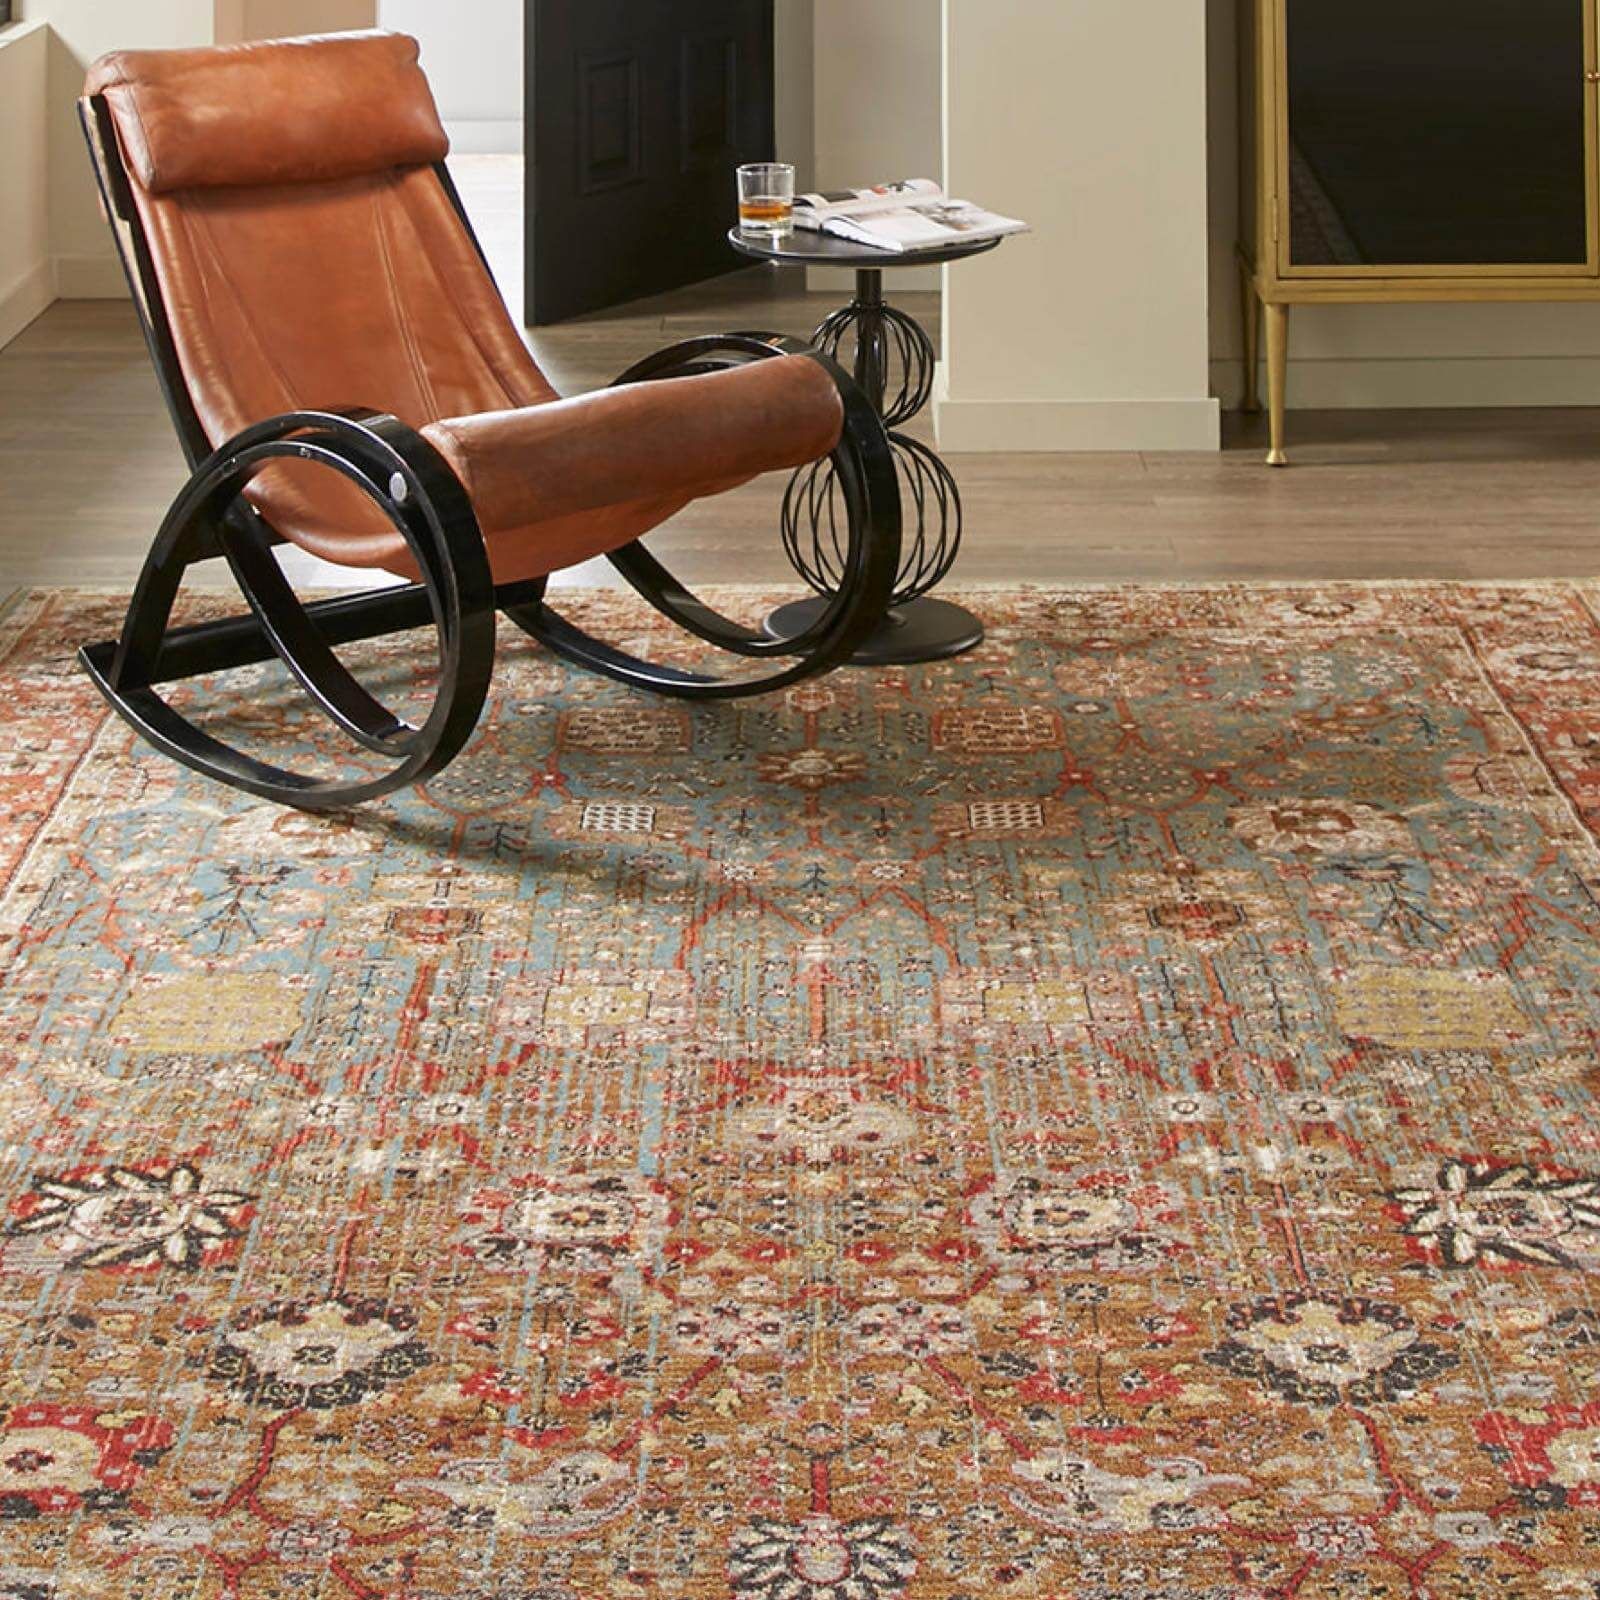 Armchair on area rug | Westport Flooring